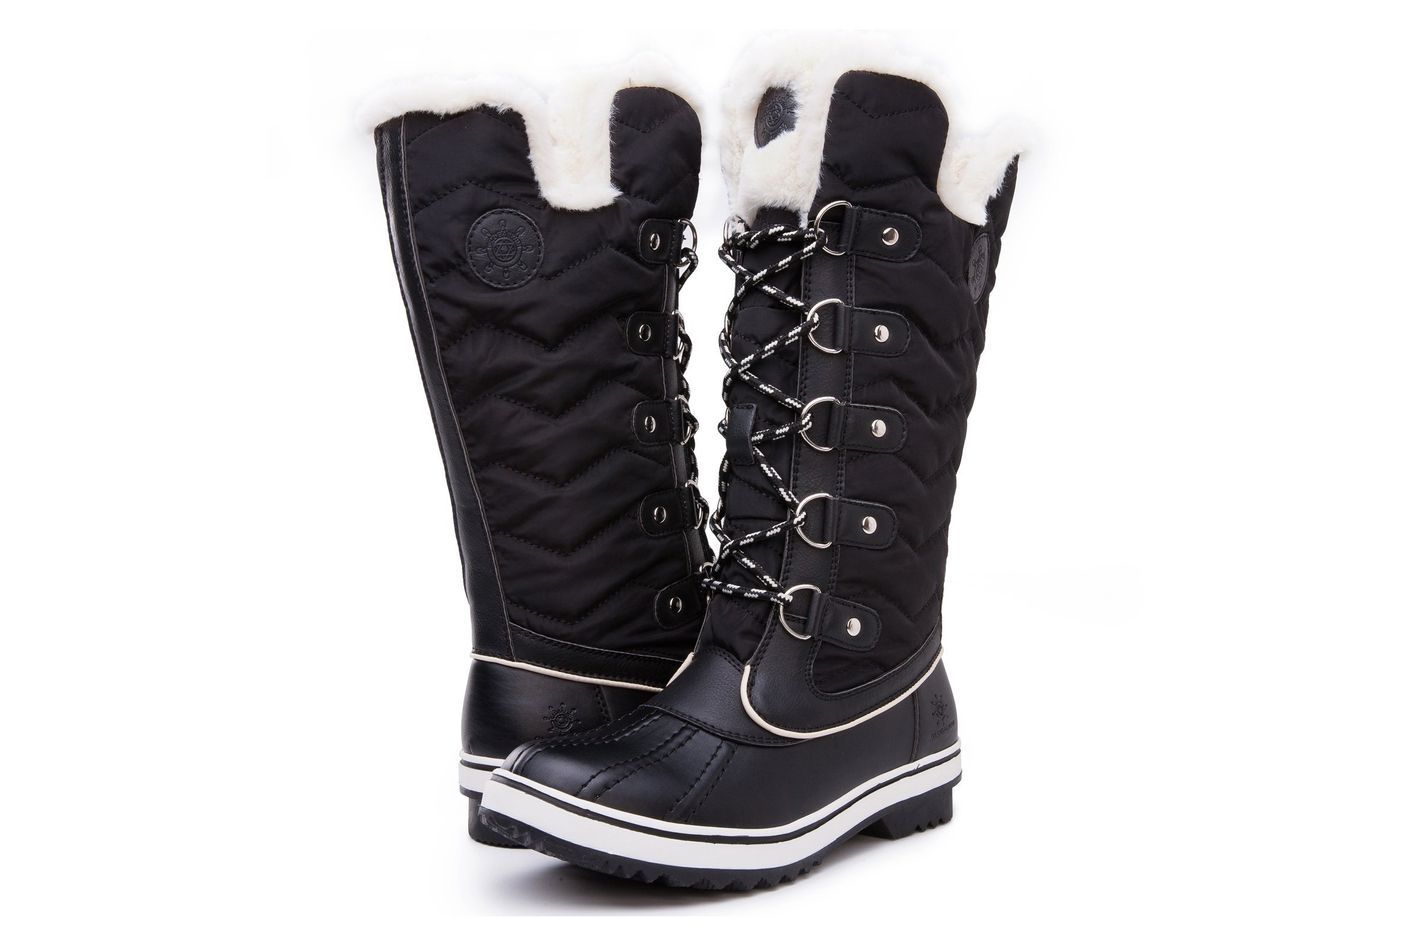 342050b9f0f6 Best quilted snow boots. Kingshow Women s Global Win Waterproof Winter Boots